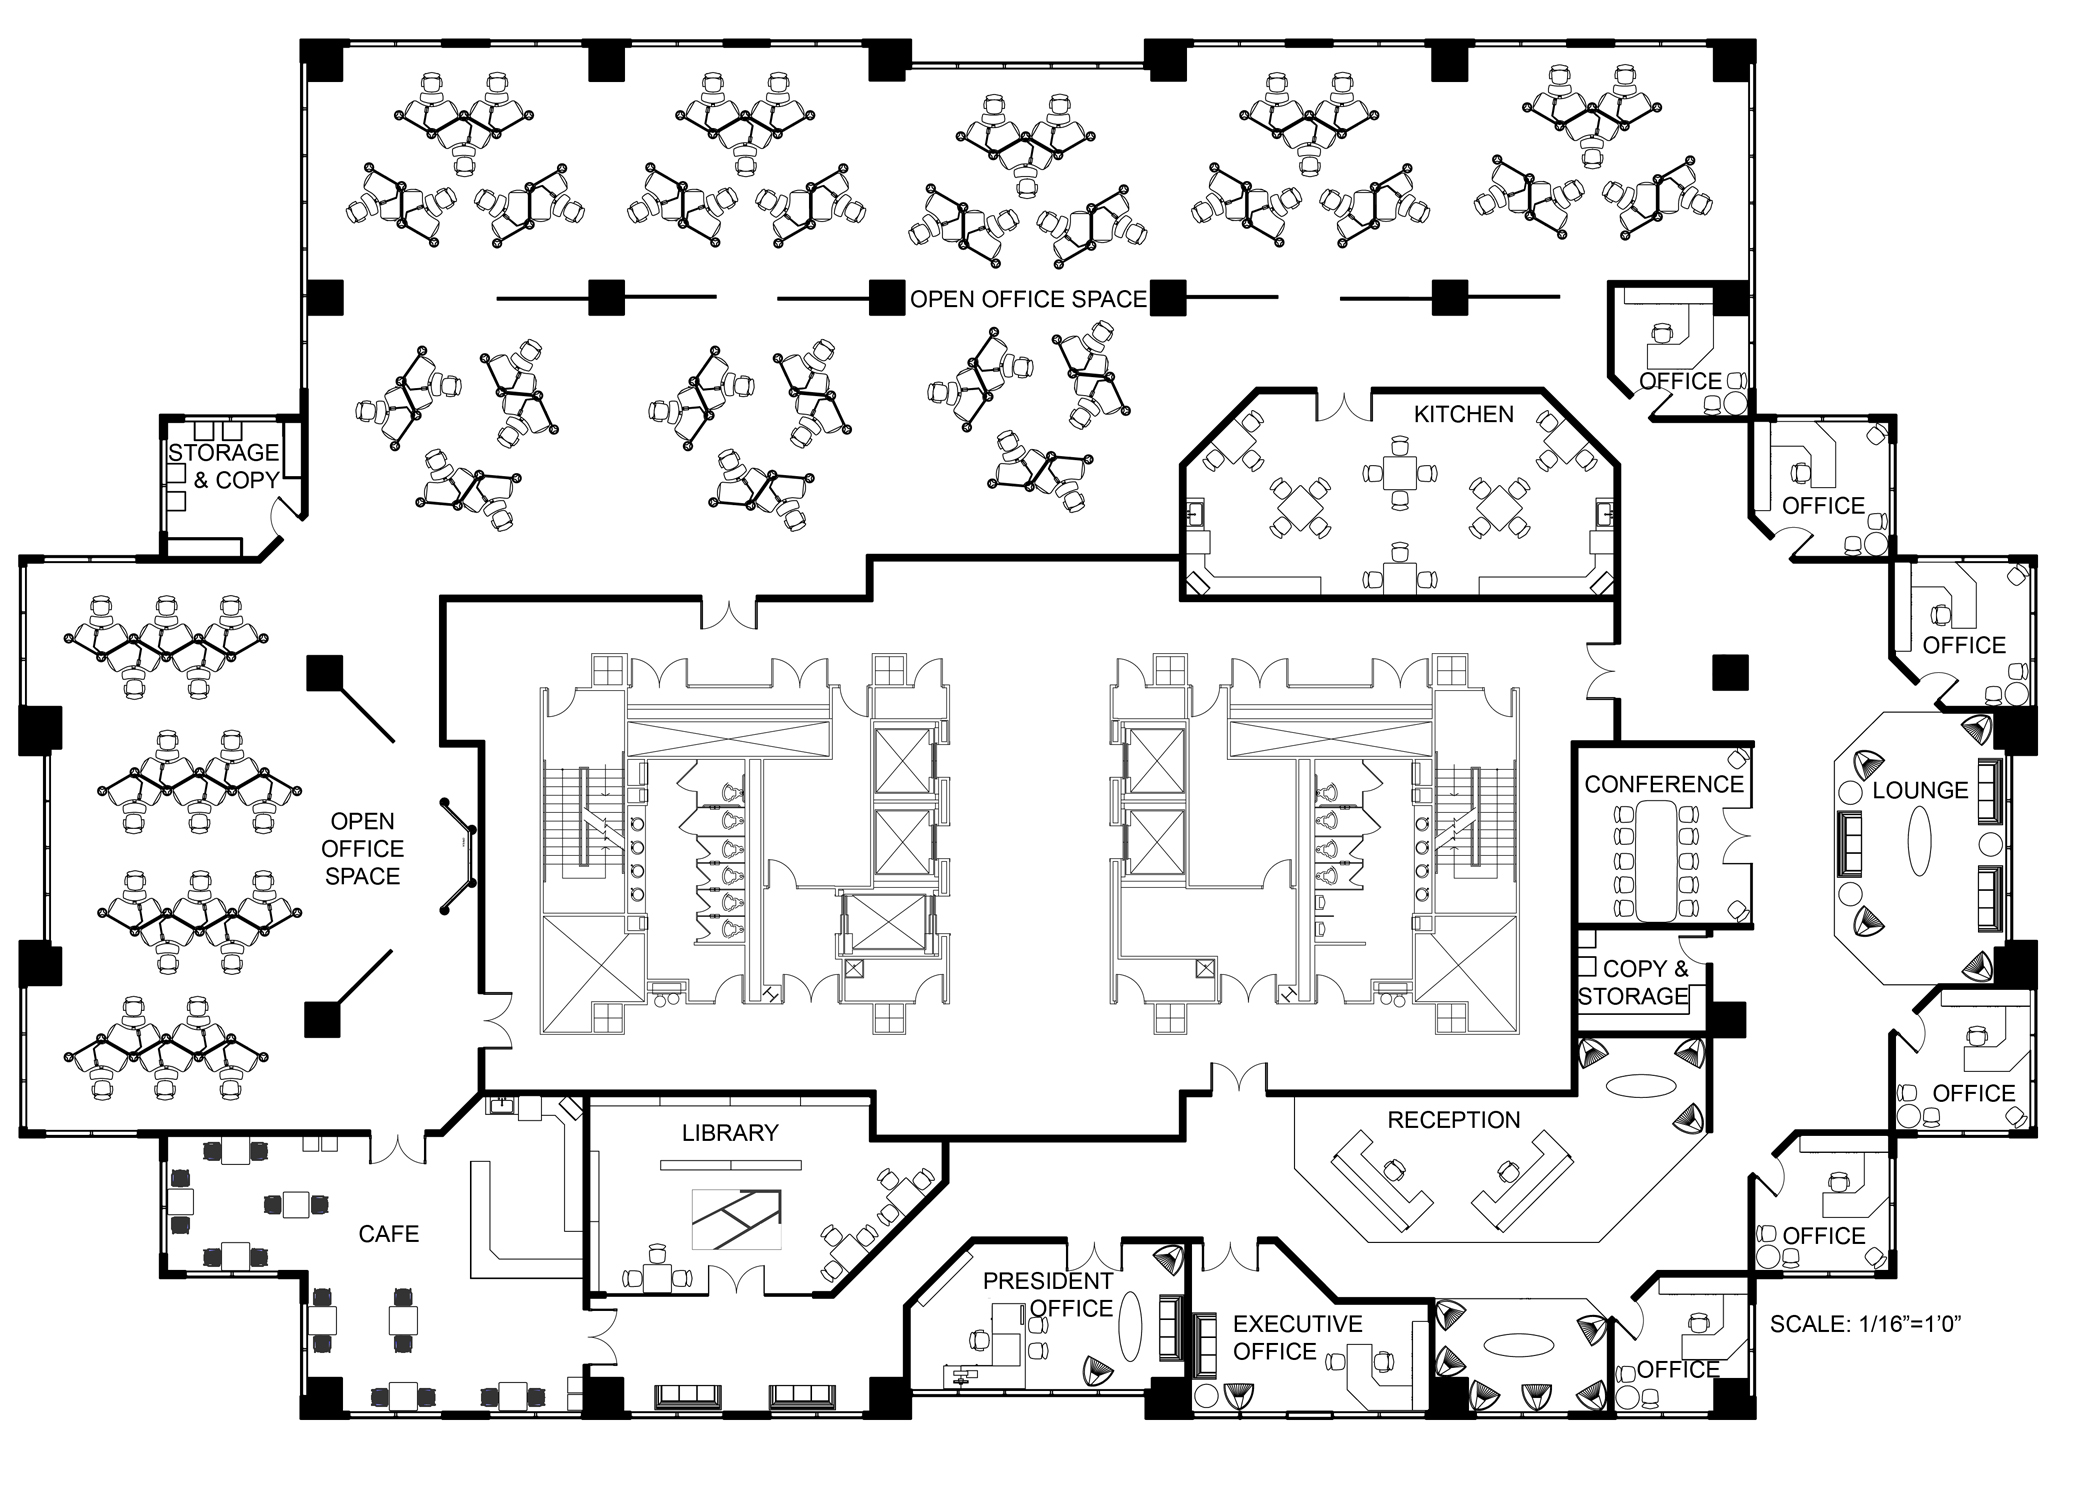 SPACE PLANNING -